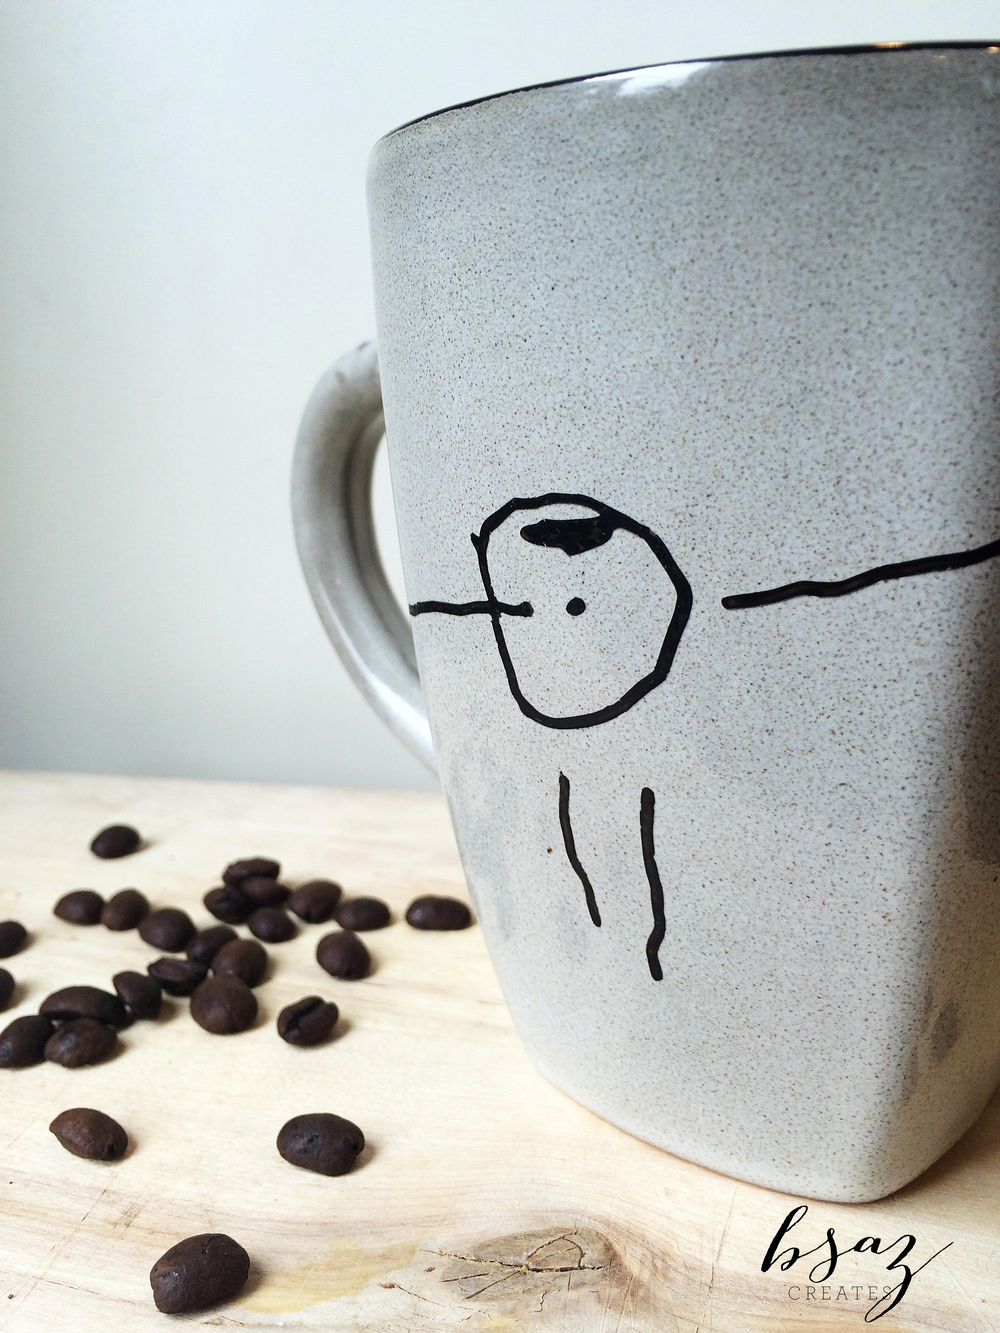 BSaz Creates Child Drawing Mug Art for Silhouette America